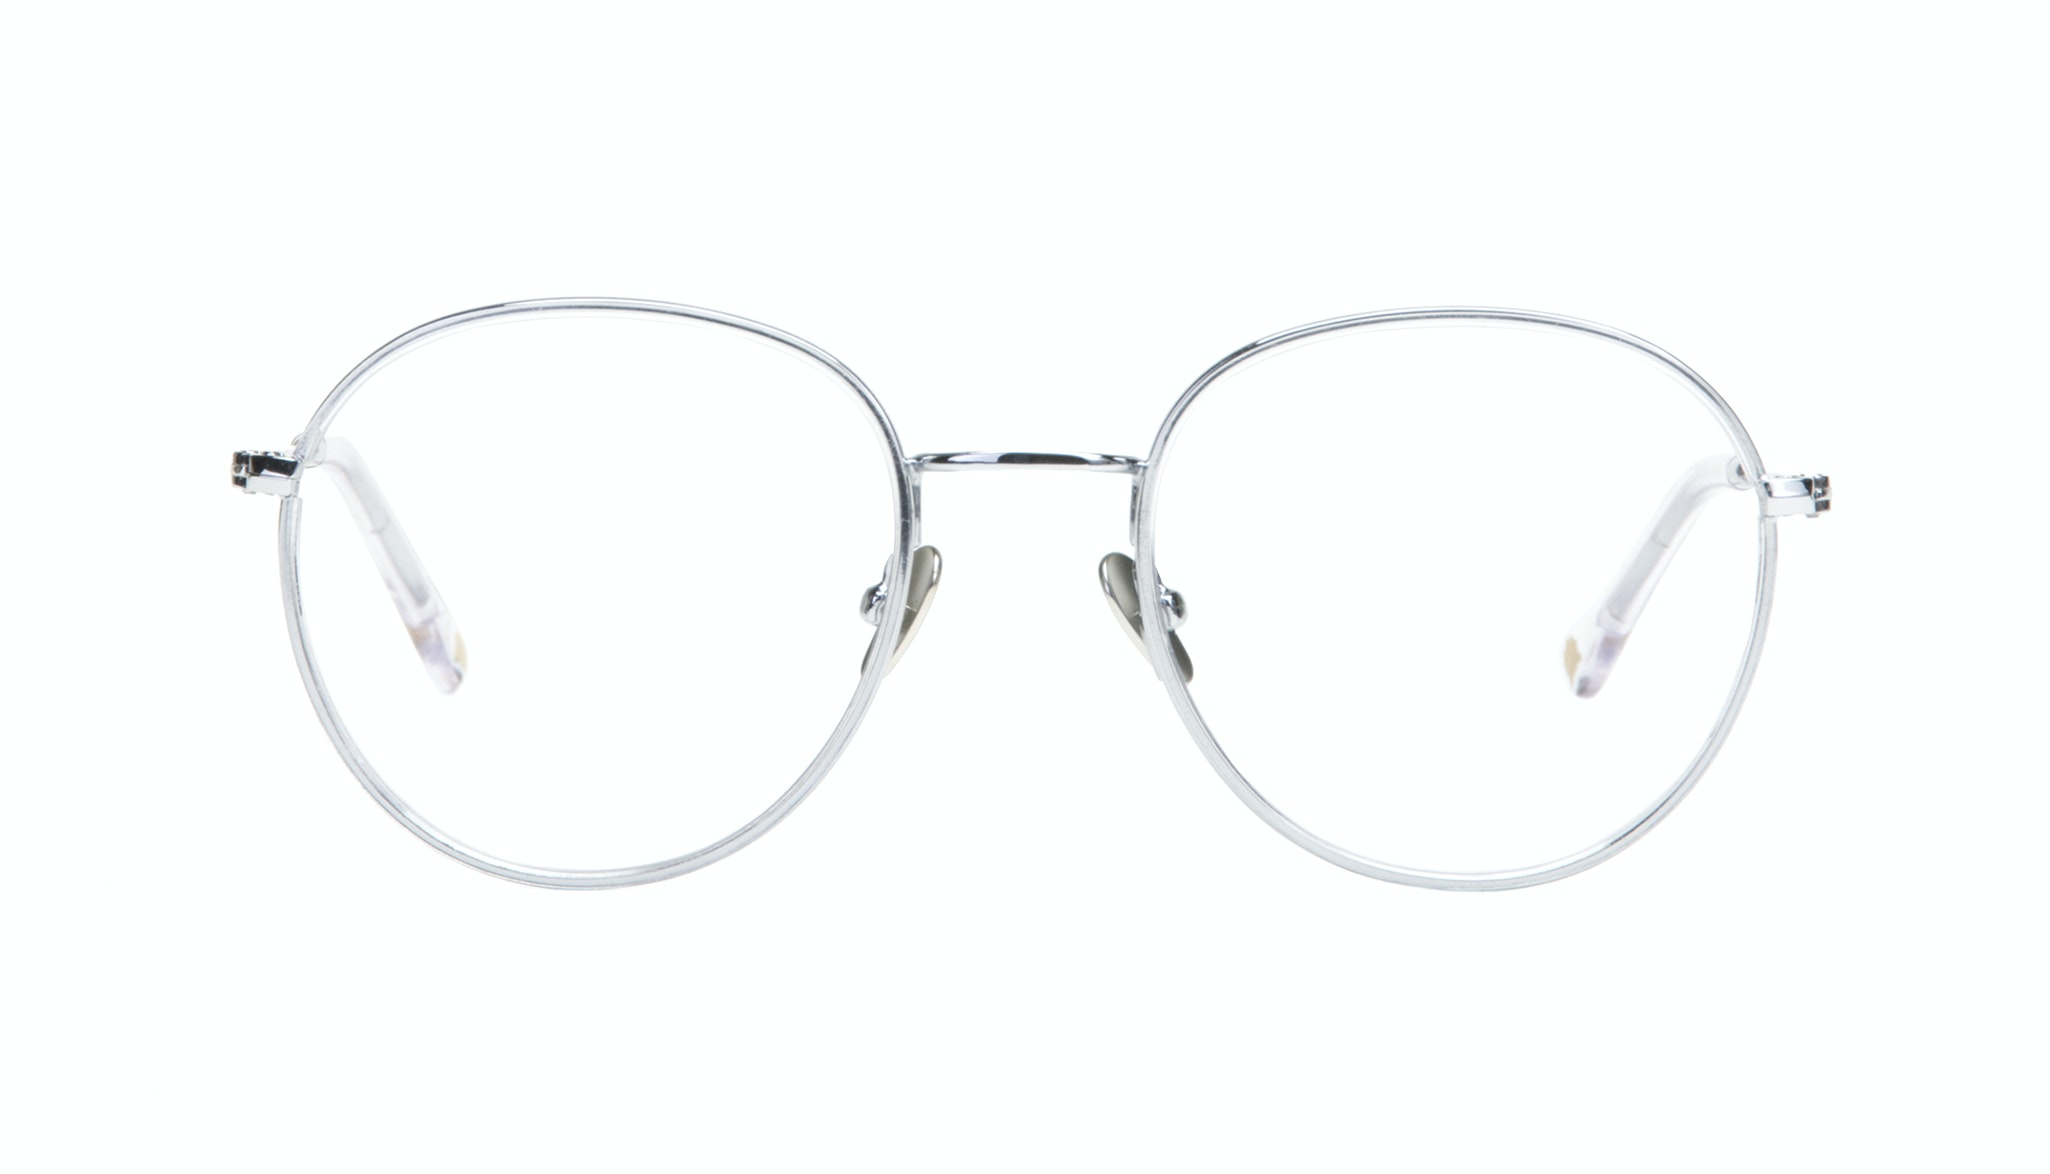 Affordable Fashion Glasses Aviator Round Eyeglasses Women Subrosa Glacier Front